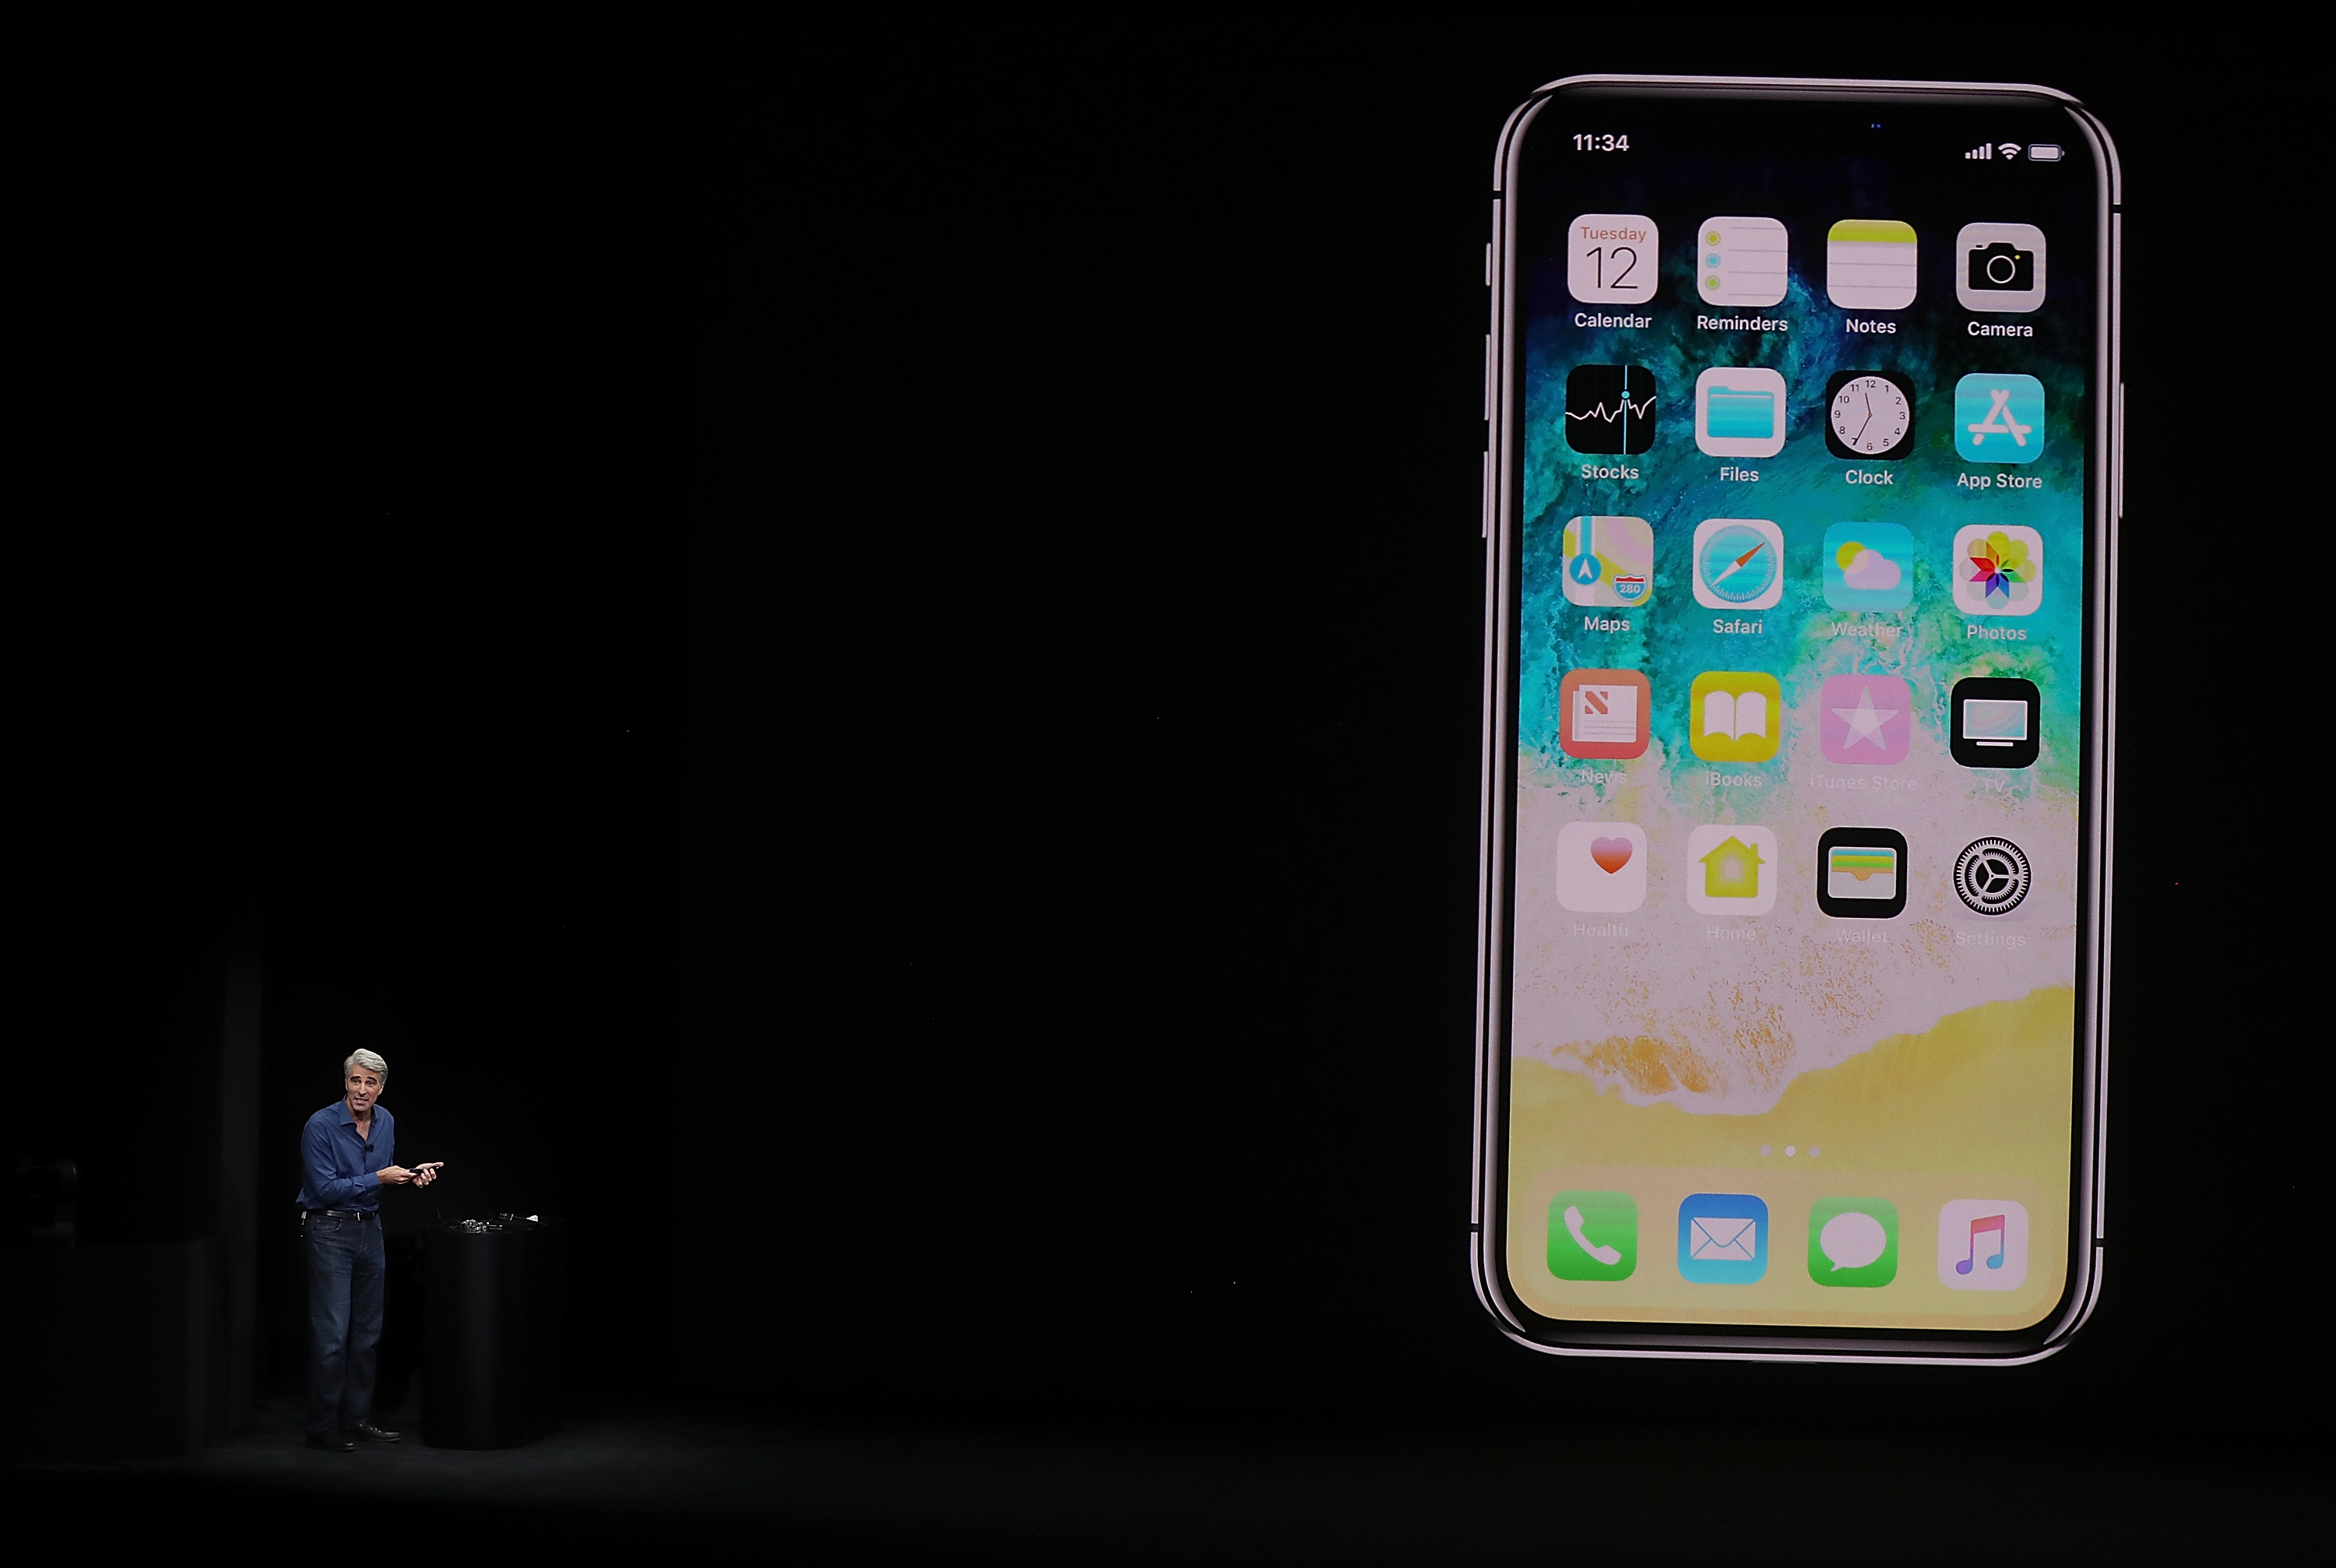 Apple Senior Vice President of Software Engineering Craig Federighi introduces the new iPhone X during an Apple special event at the Steve Jobs Theatre on the Apple Park campus in Cupertino, Calif., on Sept. 12, 2017. (Justin Sullivan/Getty Images)